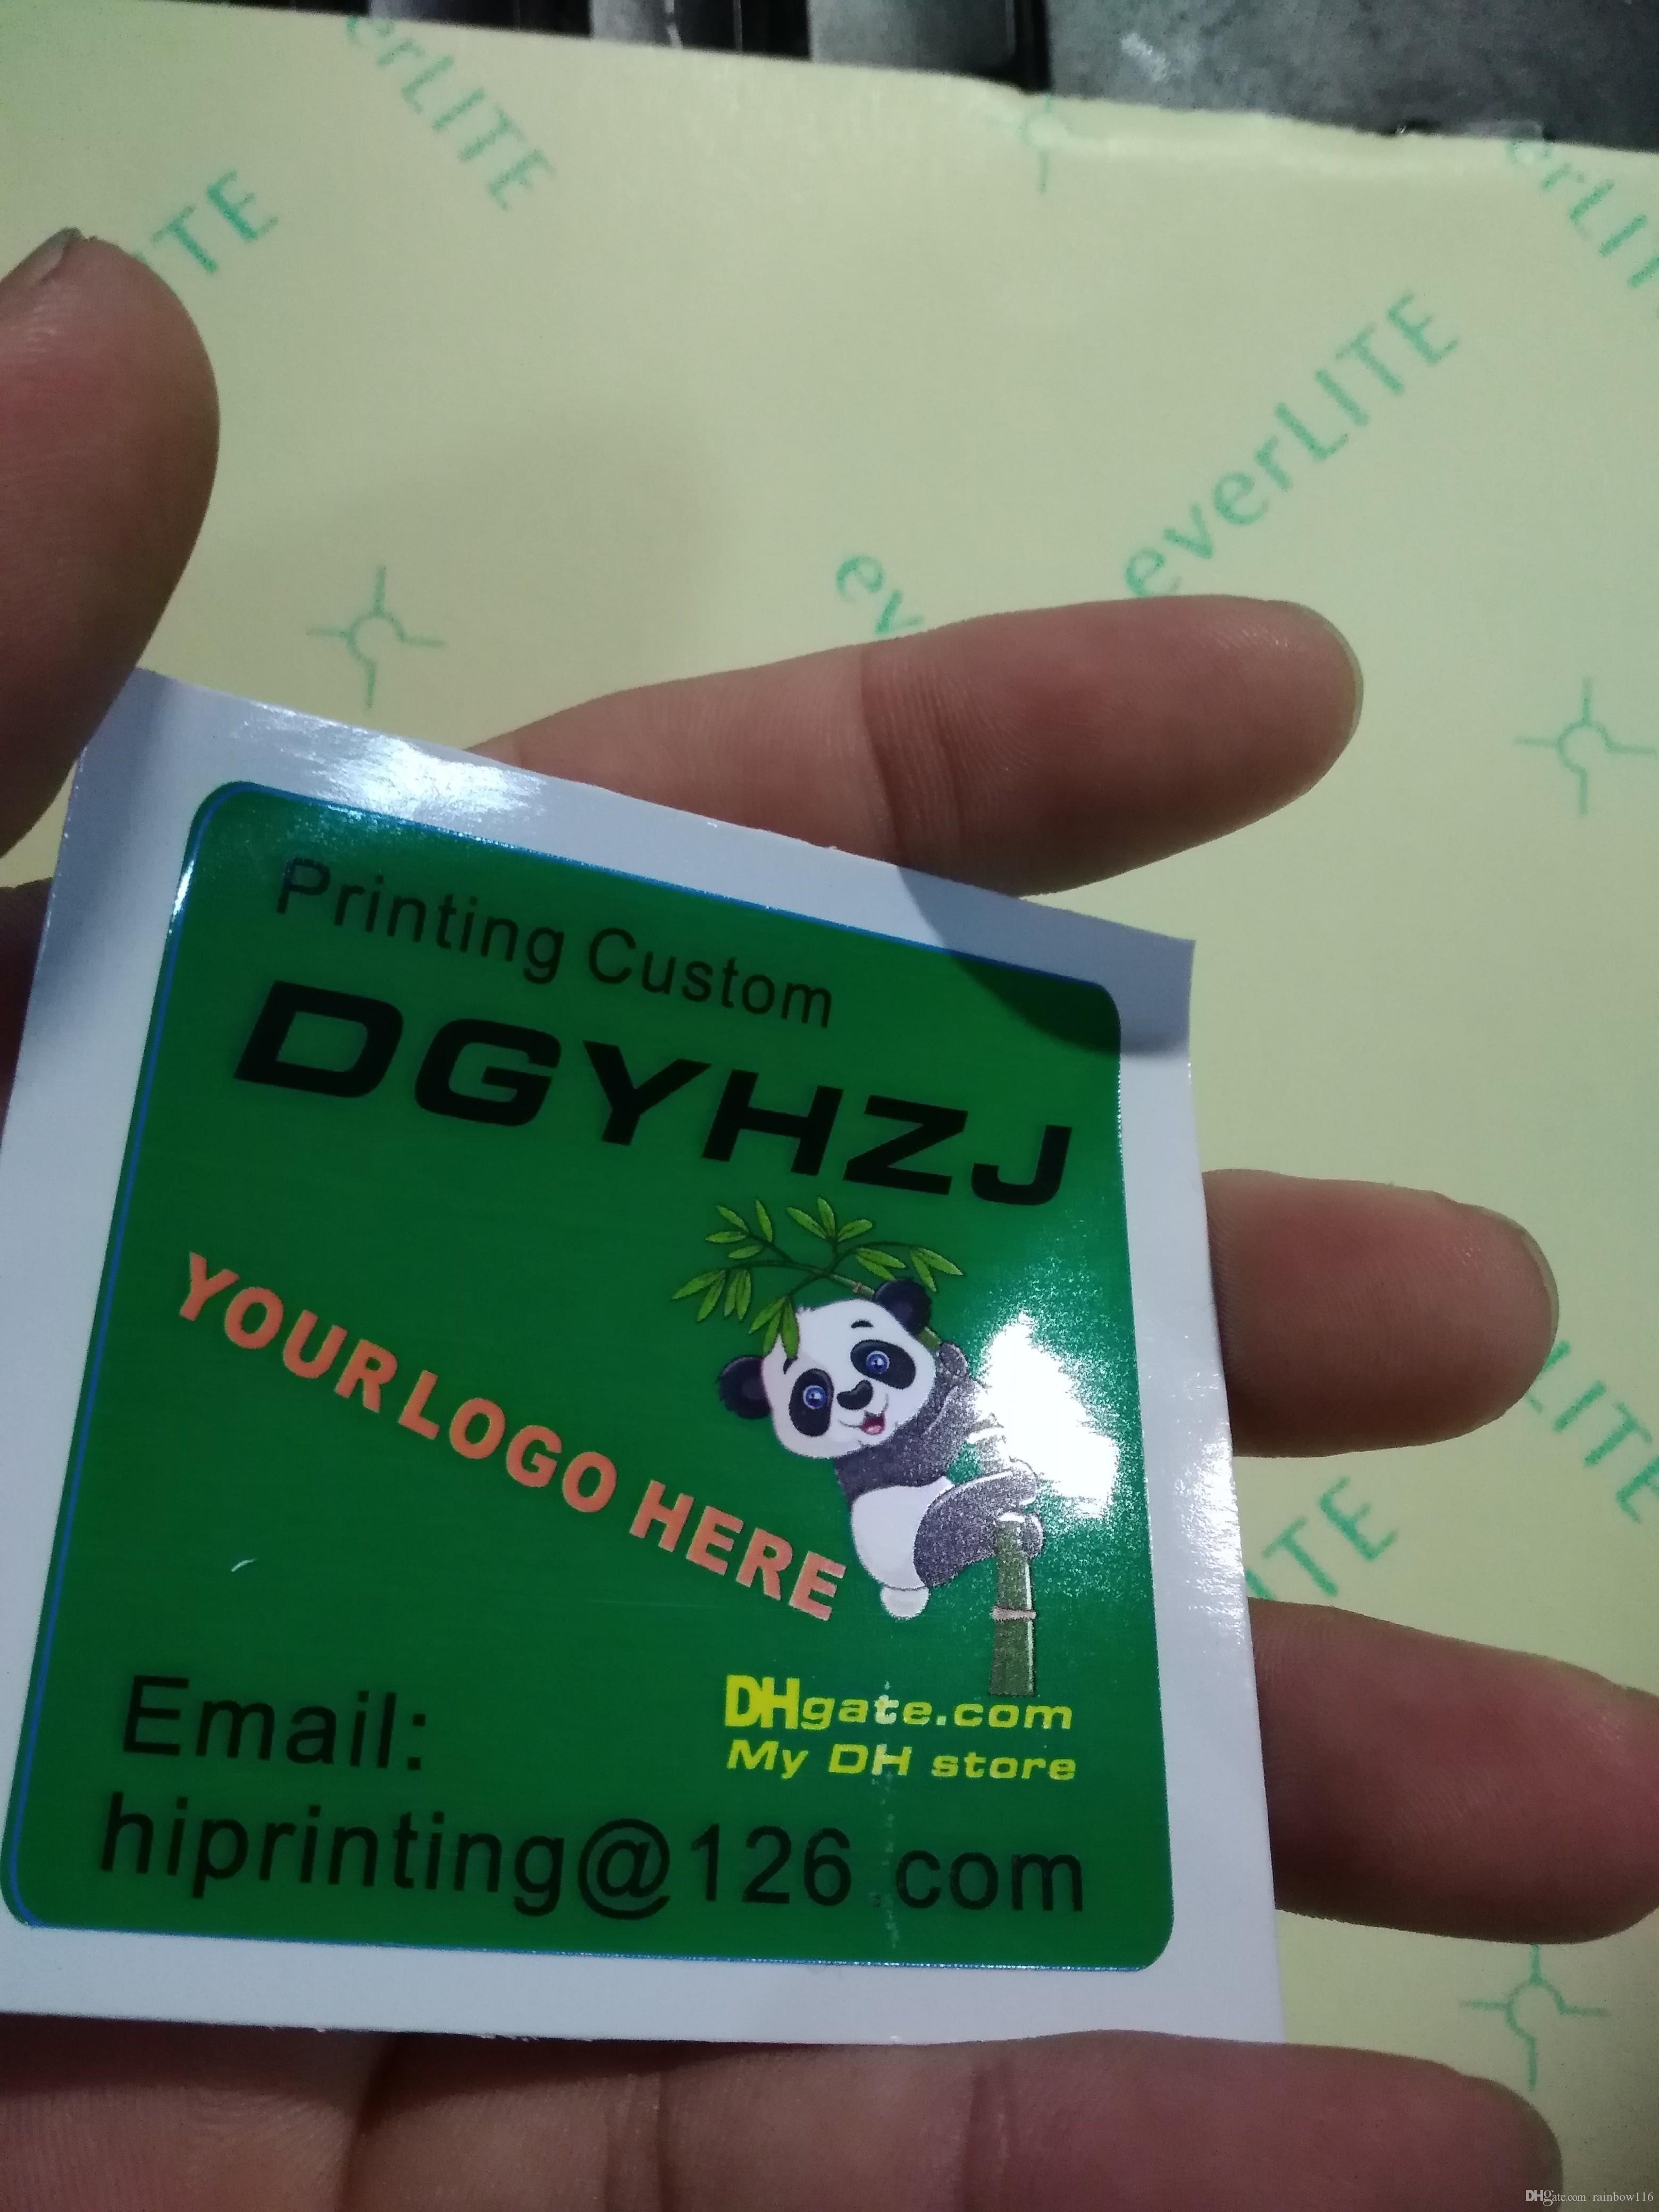 Glossy clear epoxy dome sticker custom stationery stores online paper shops from rainbow116 251 26 dhgate com